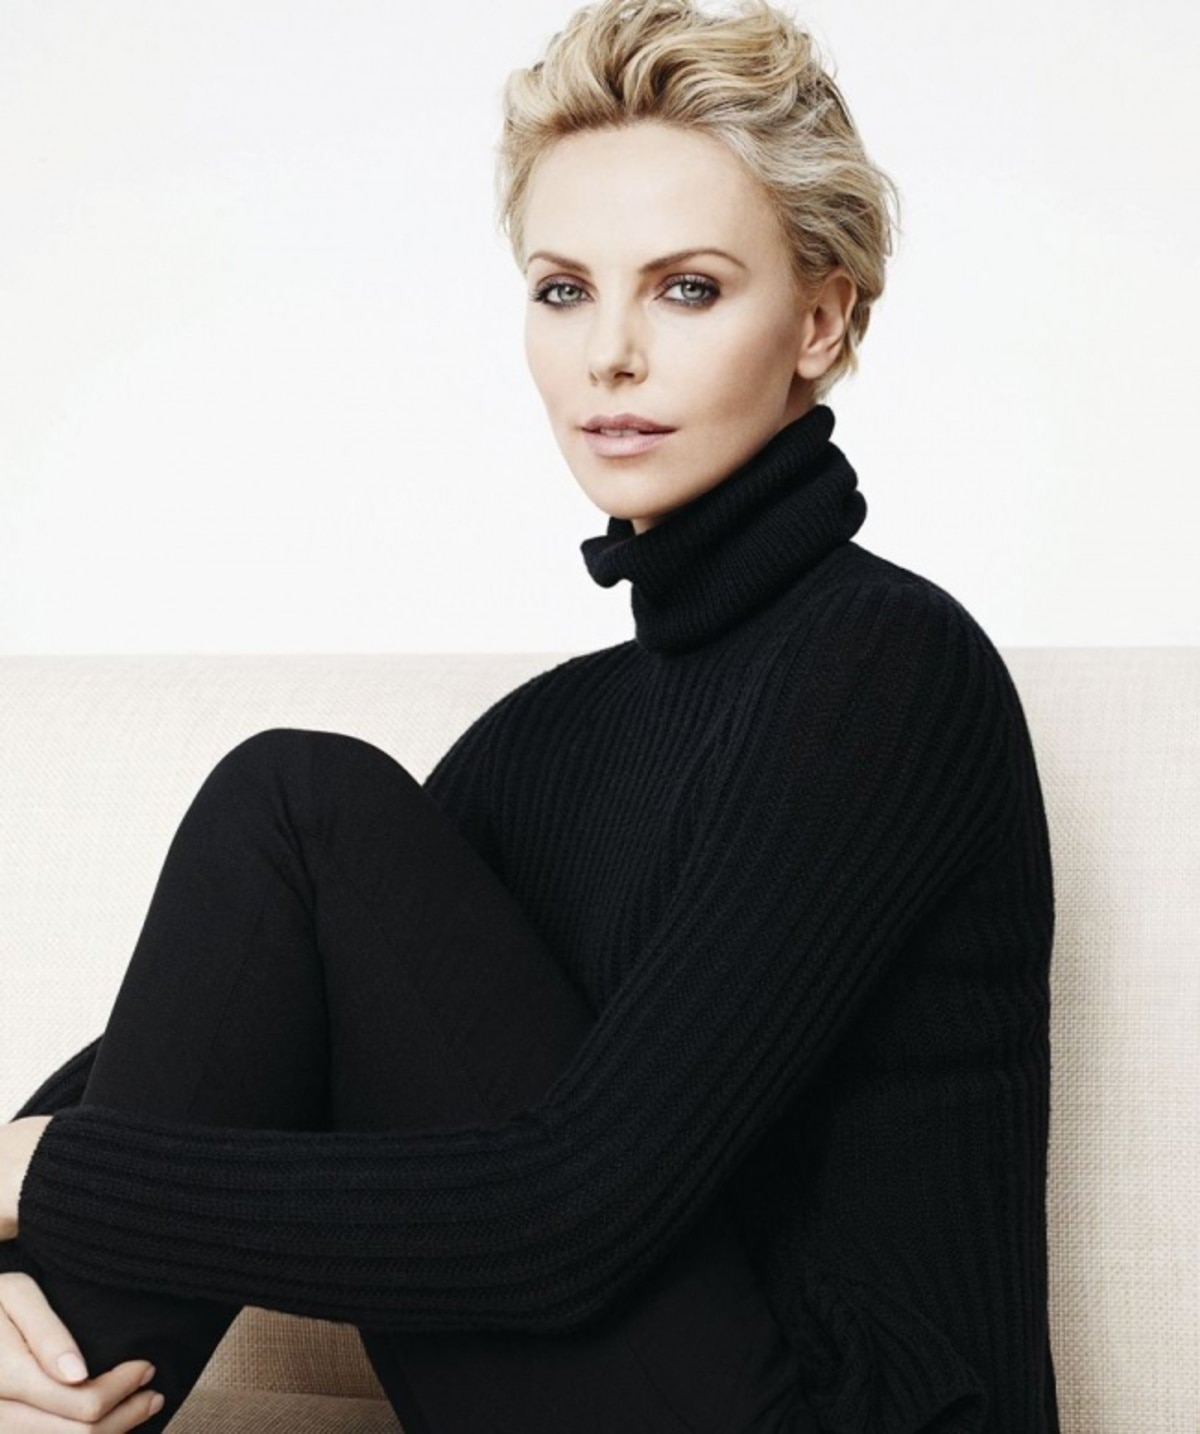 6692810-1468310898_charlize-theron-for-the-brand-dior-4-1473685444-650-170254ec98-1474037781